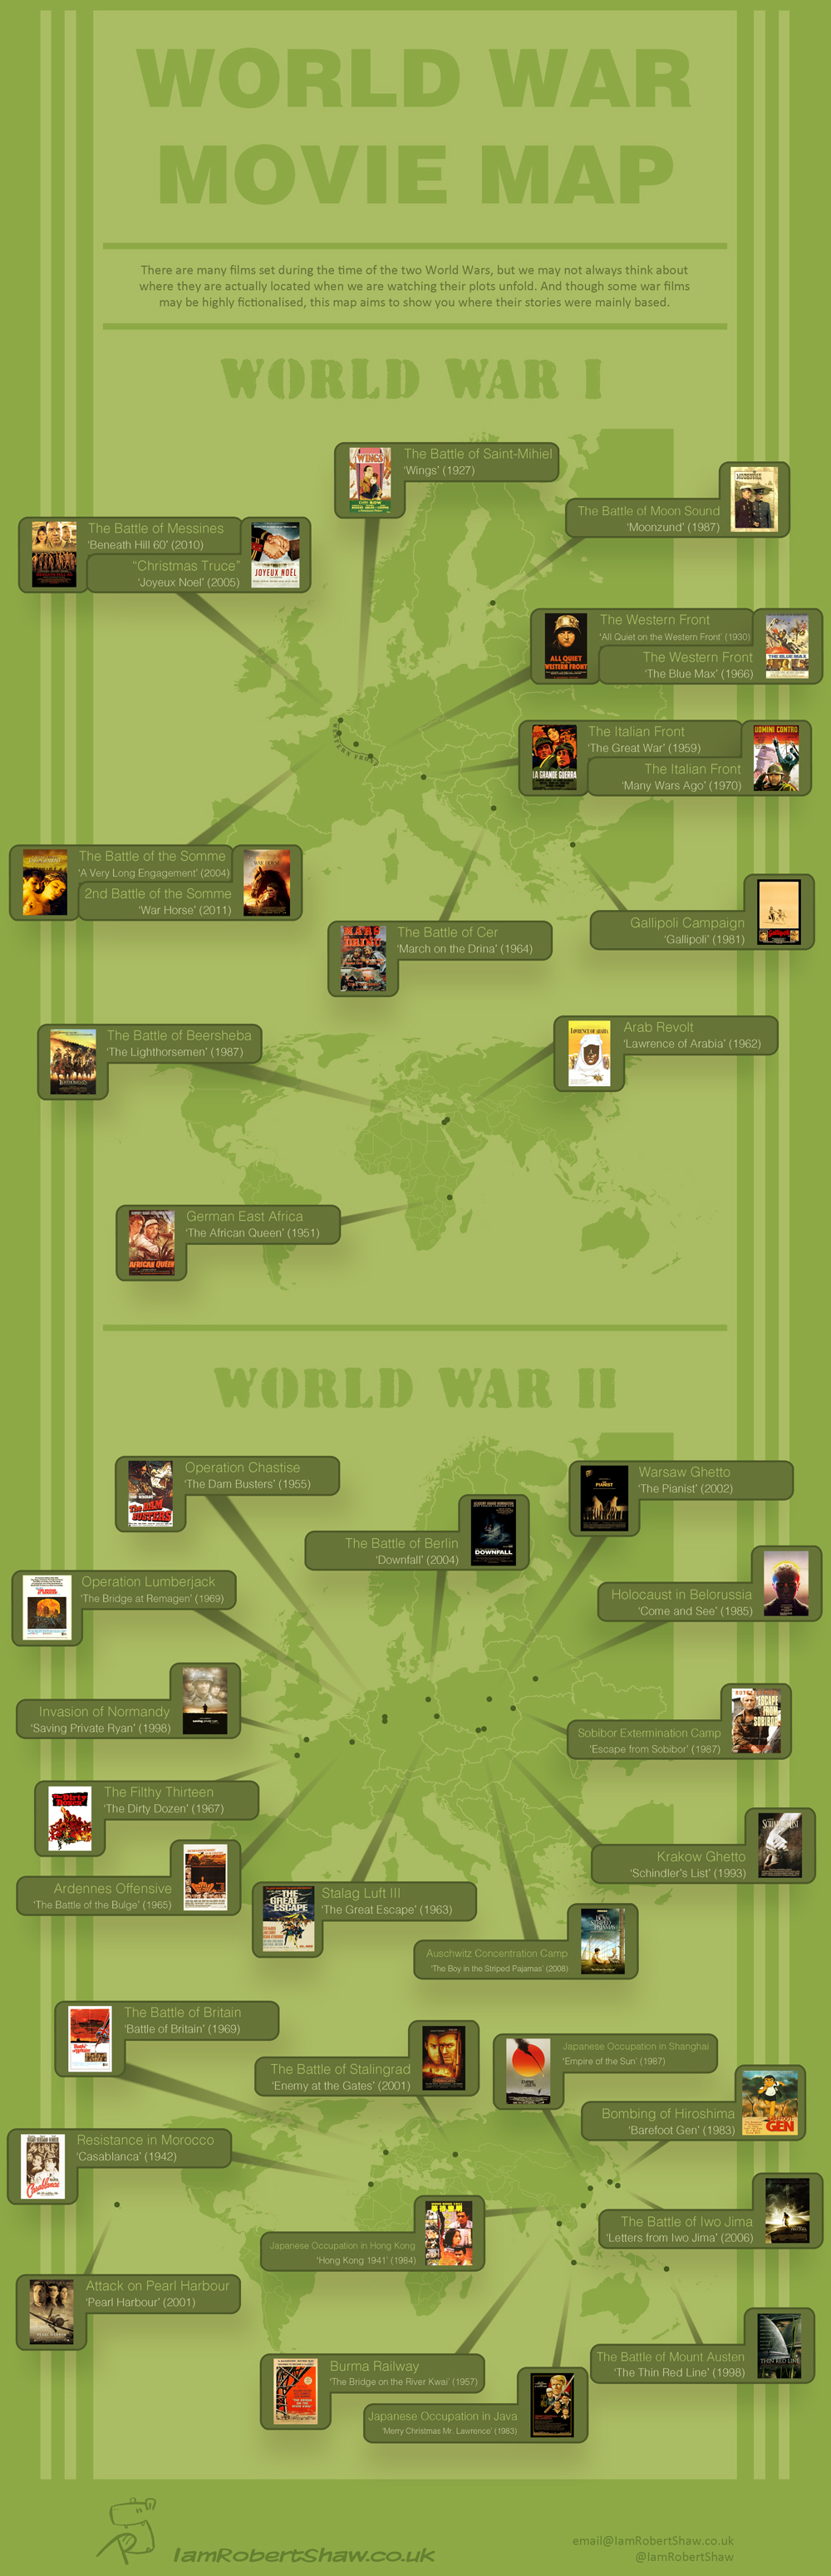 Two maps of the world illustrate the locations of various movie plots from the first and second world war.